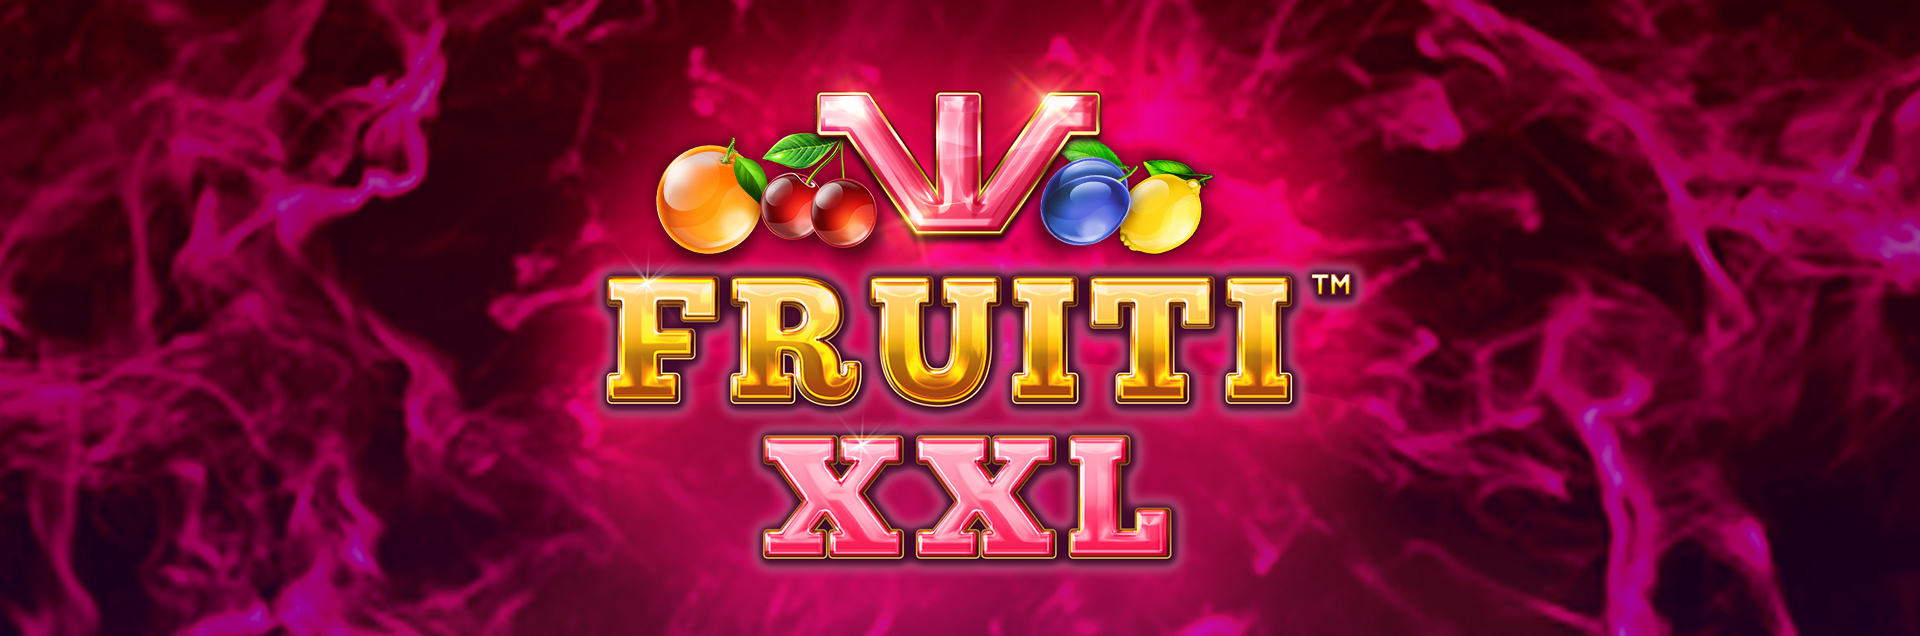 Fruiti XXL header games